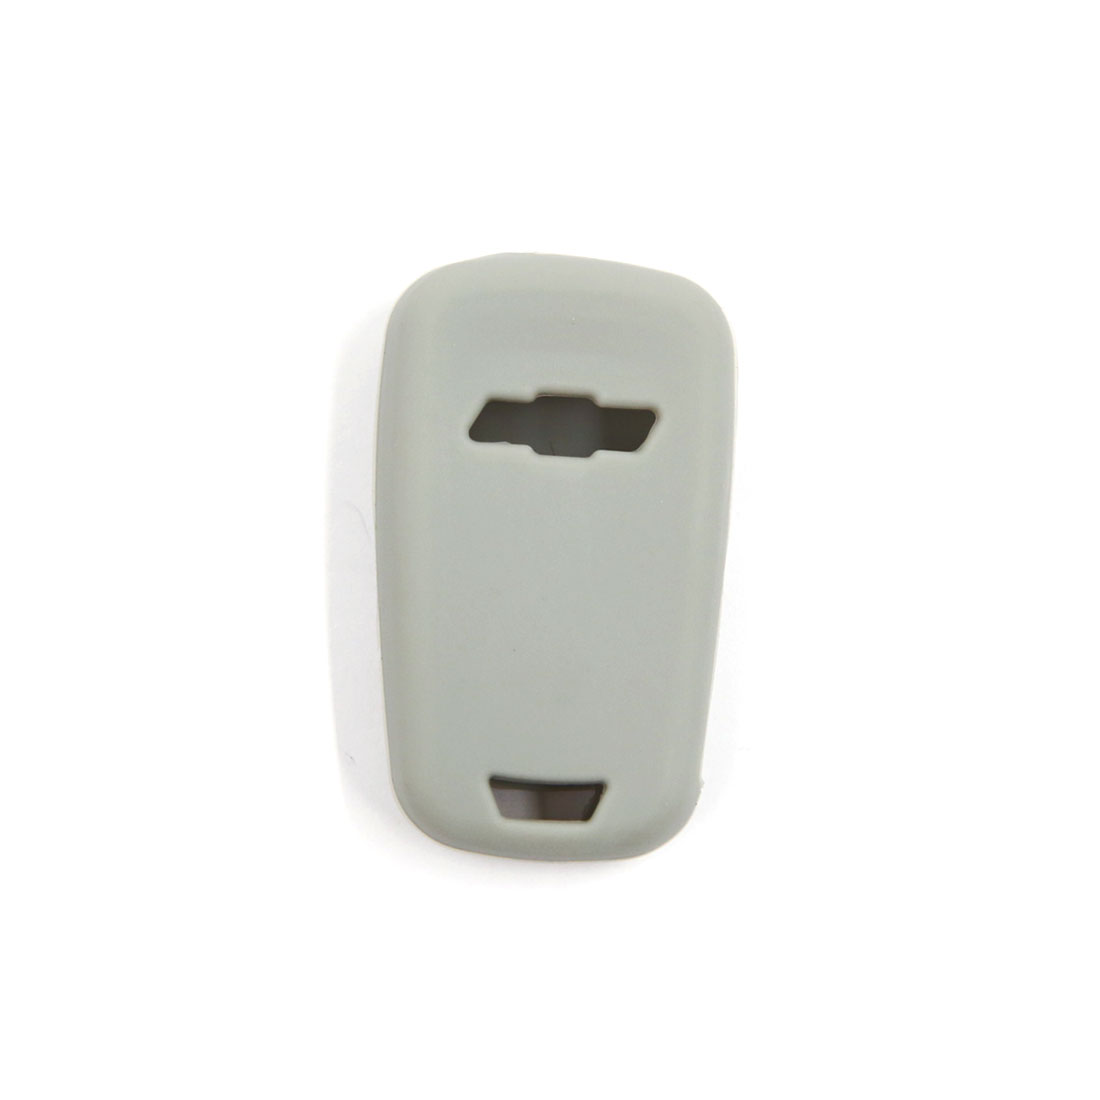 Unique Bargains Gray 3 Buttons Silicone Remote Key Case Cover Holder for Chevrolet Cruze Camaro - image 1 of 2